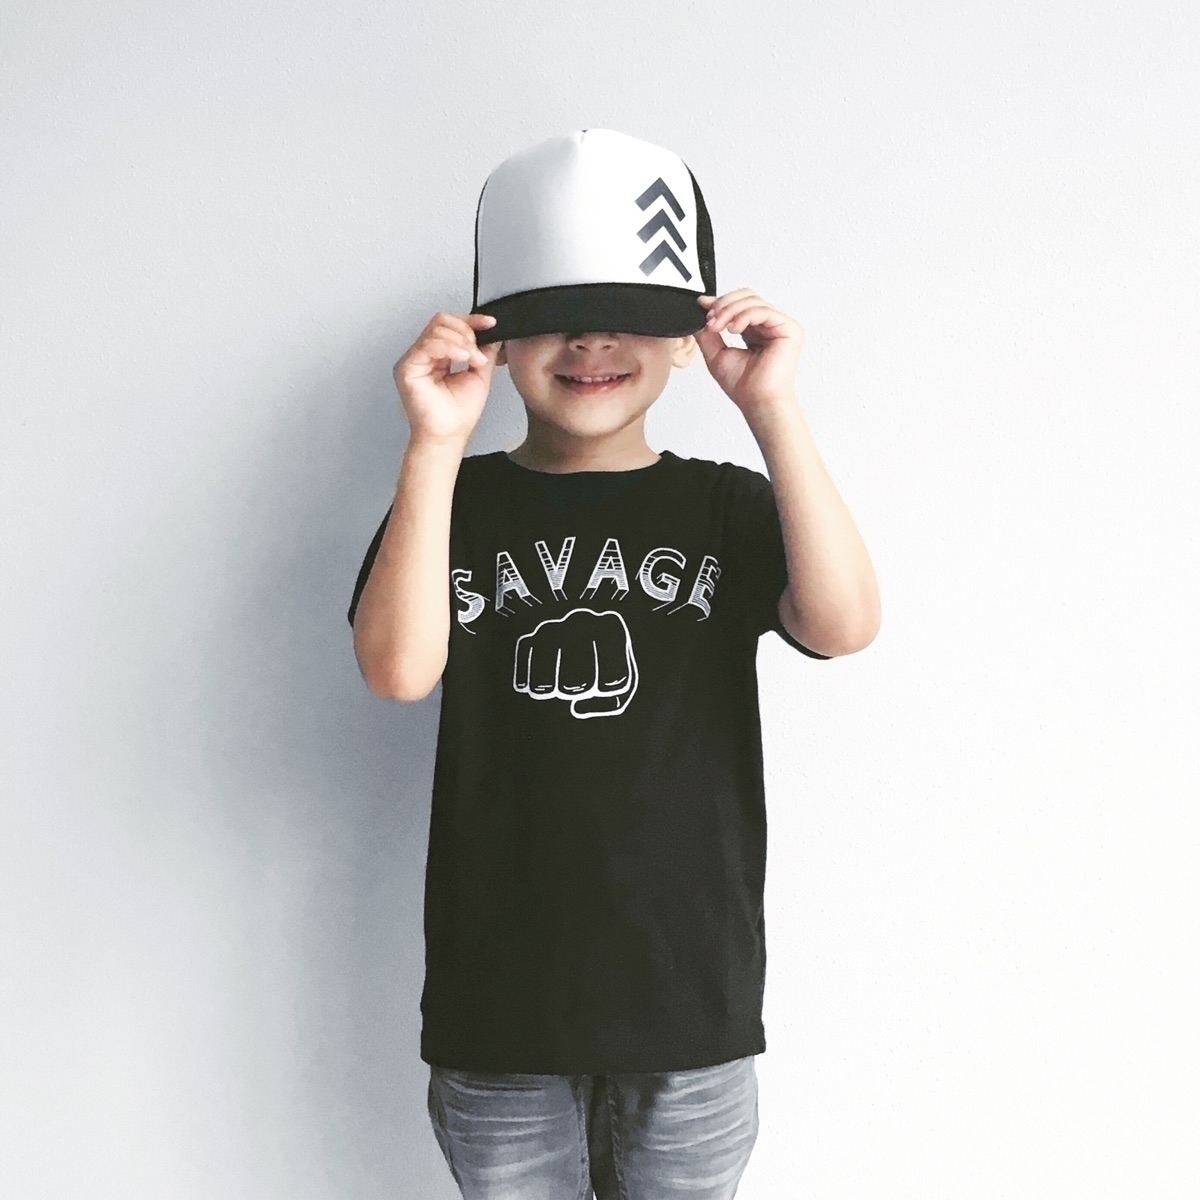 Savage shirt snapback - twins_onpoint | ello